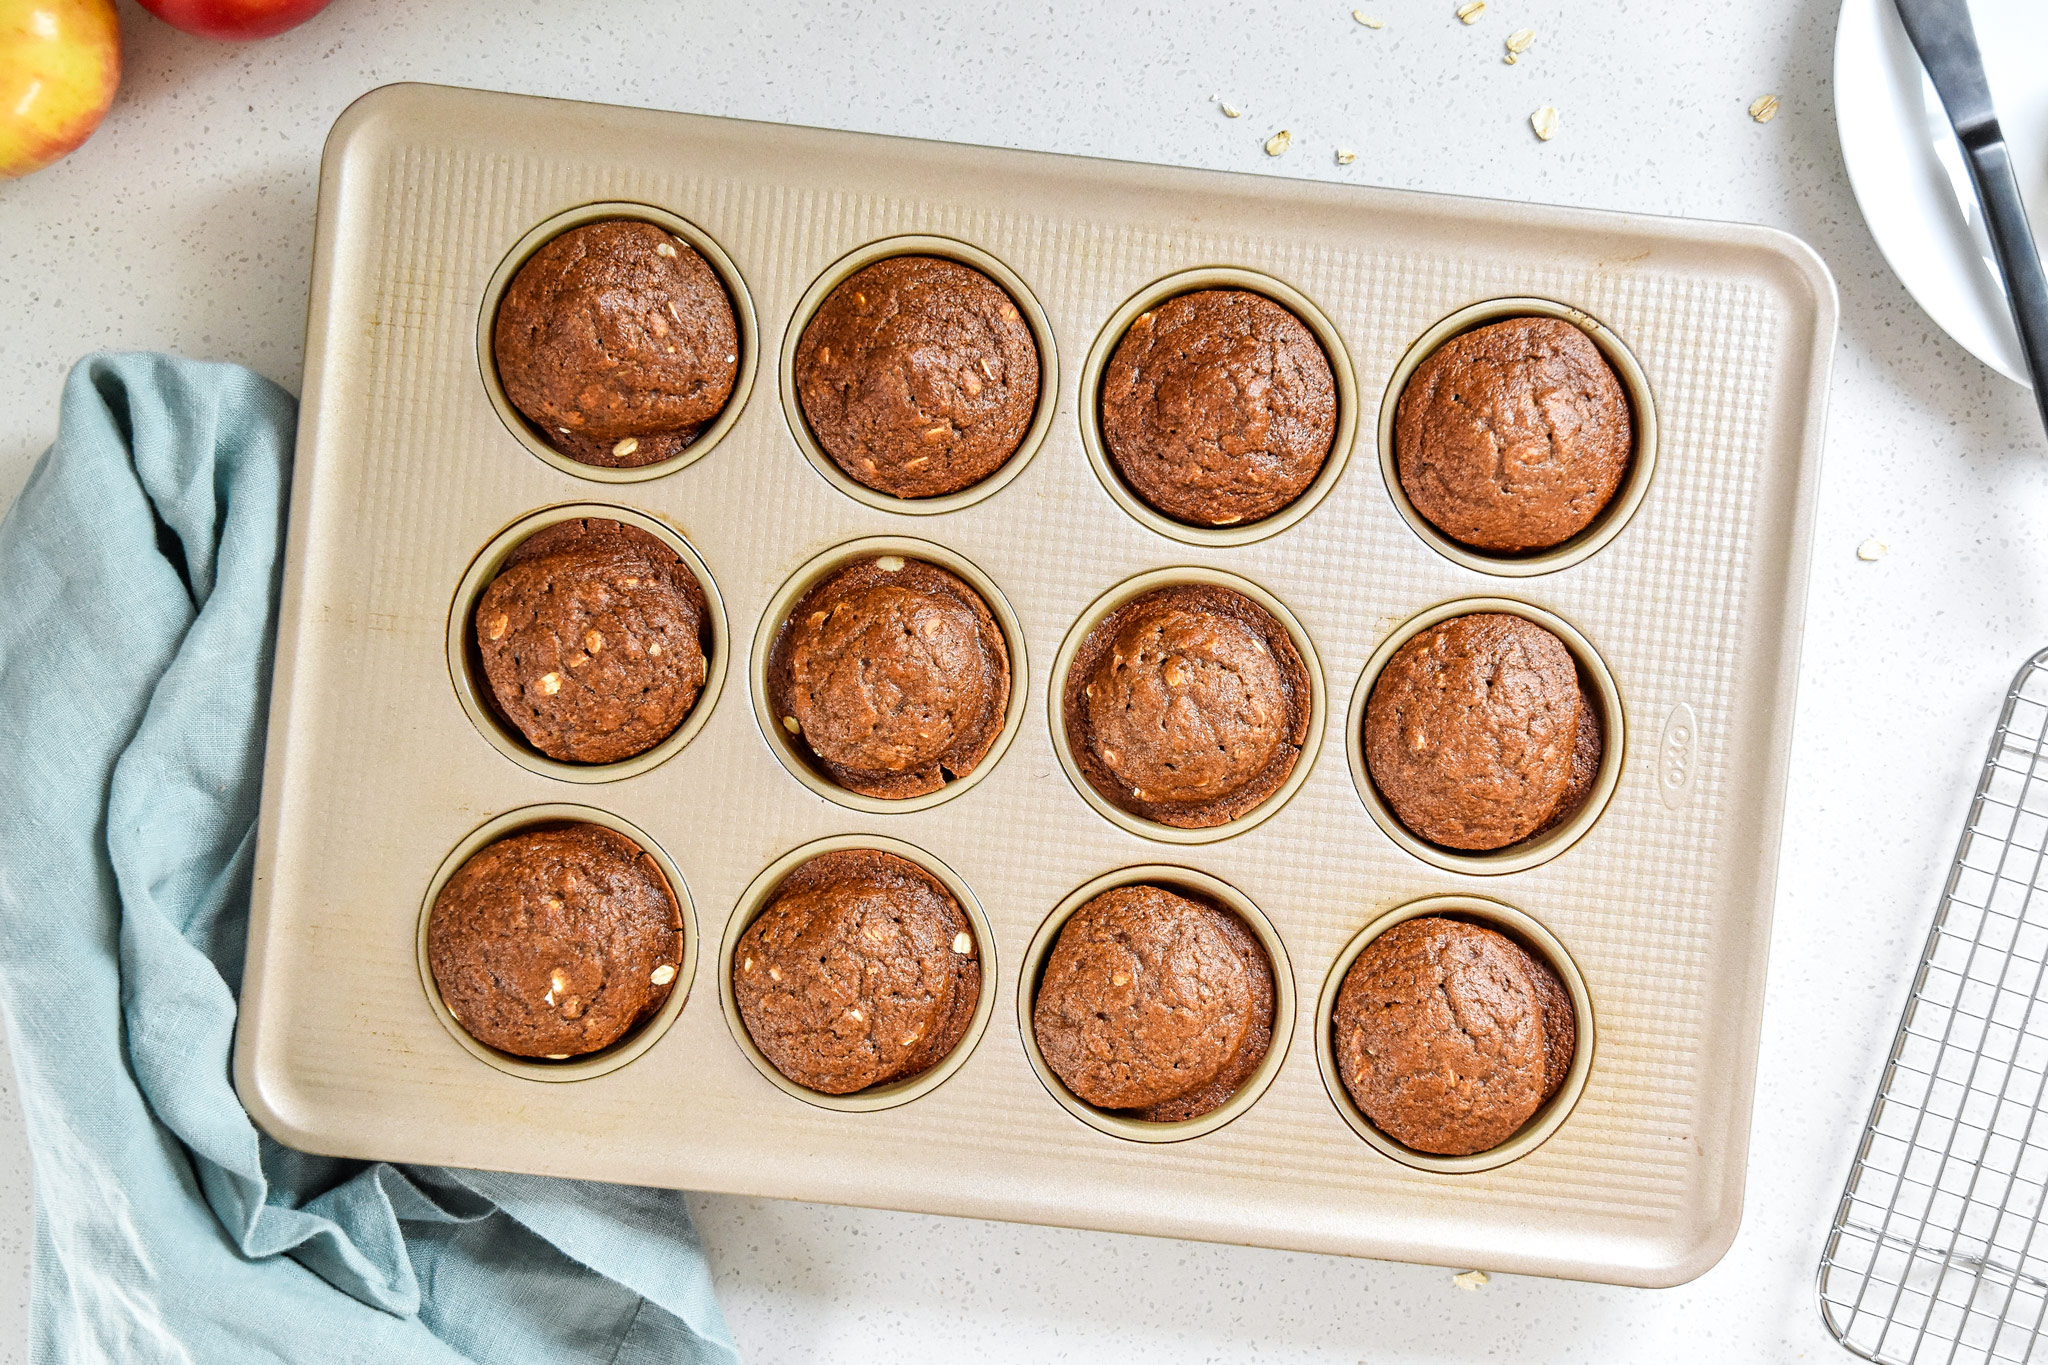 fresh baked oatmeal applesauce blender muffins from the oven